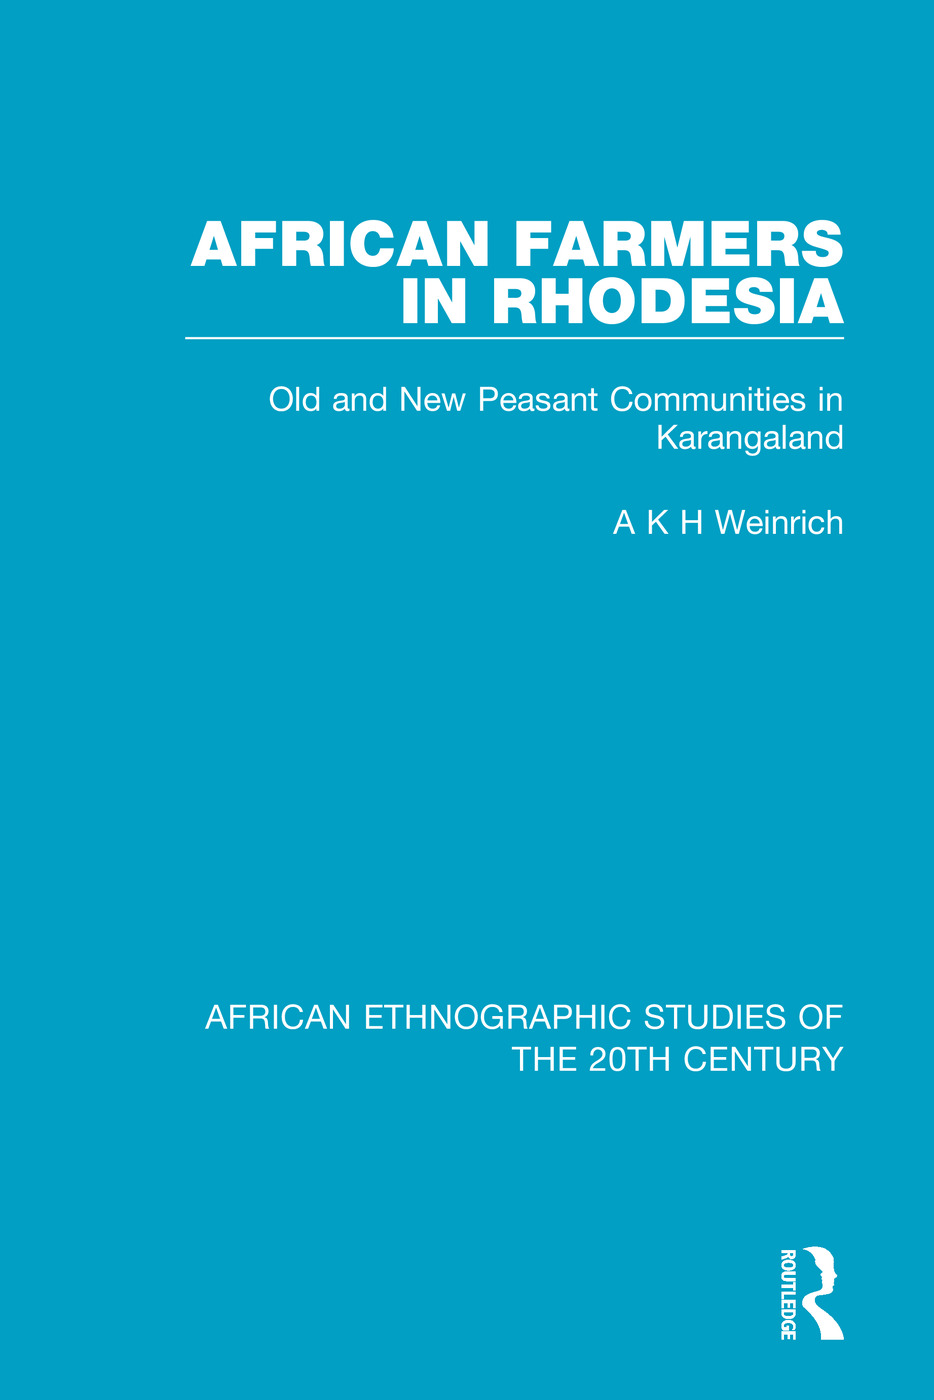 African Farmers in Rhodesia: Old and New Peasant Communities in Karangaland book cover